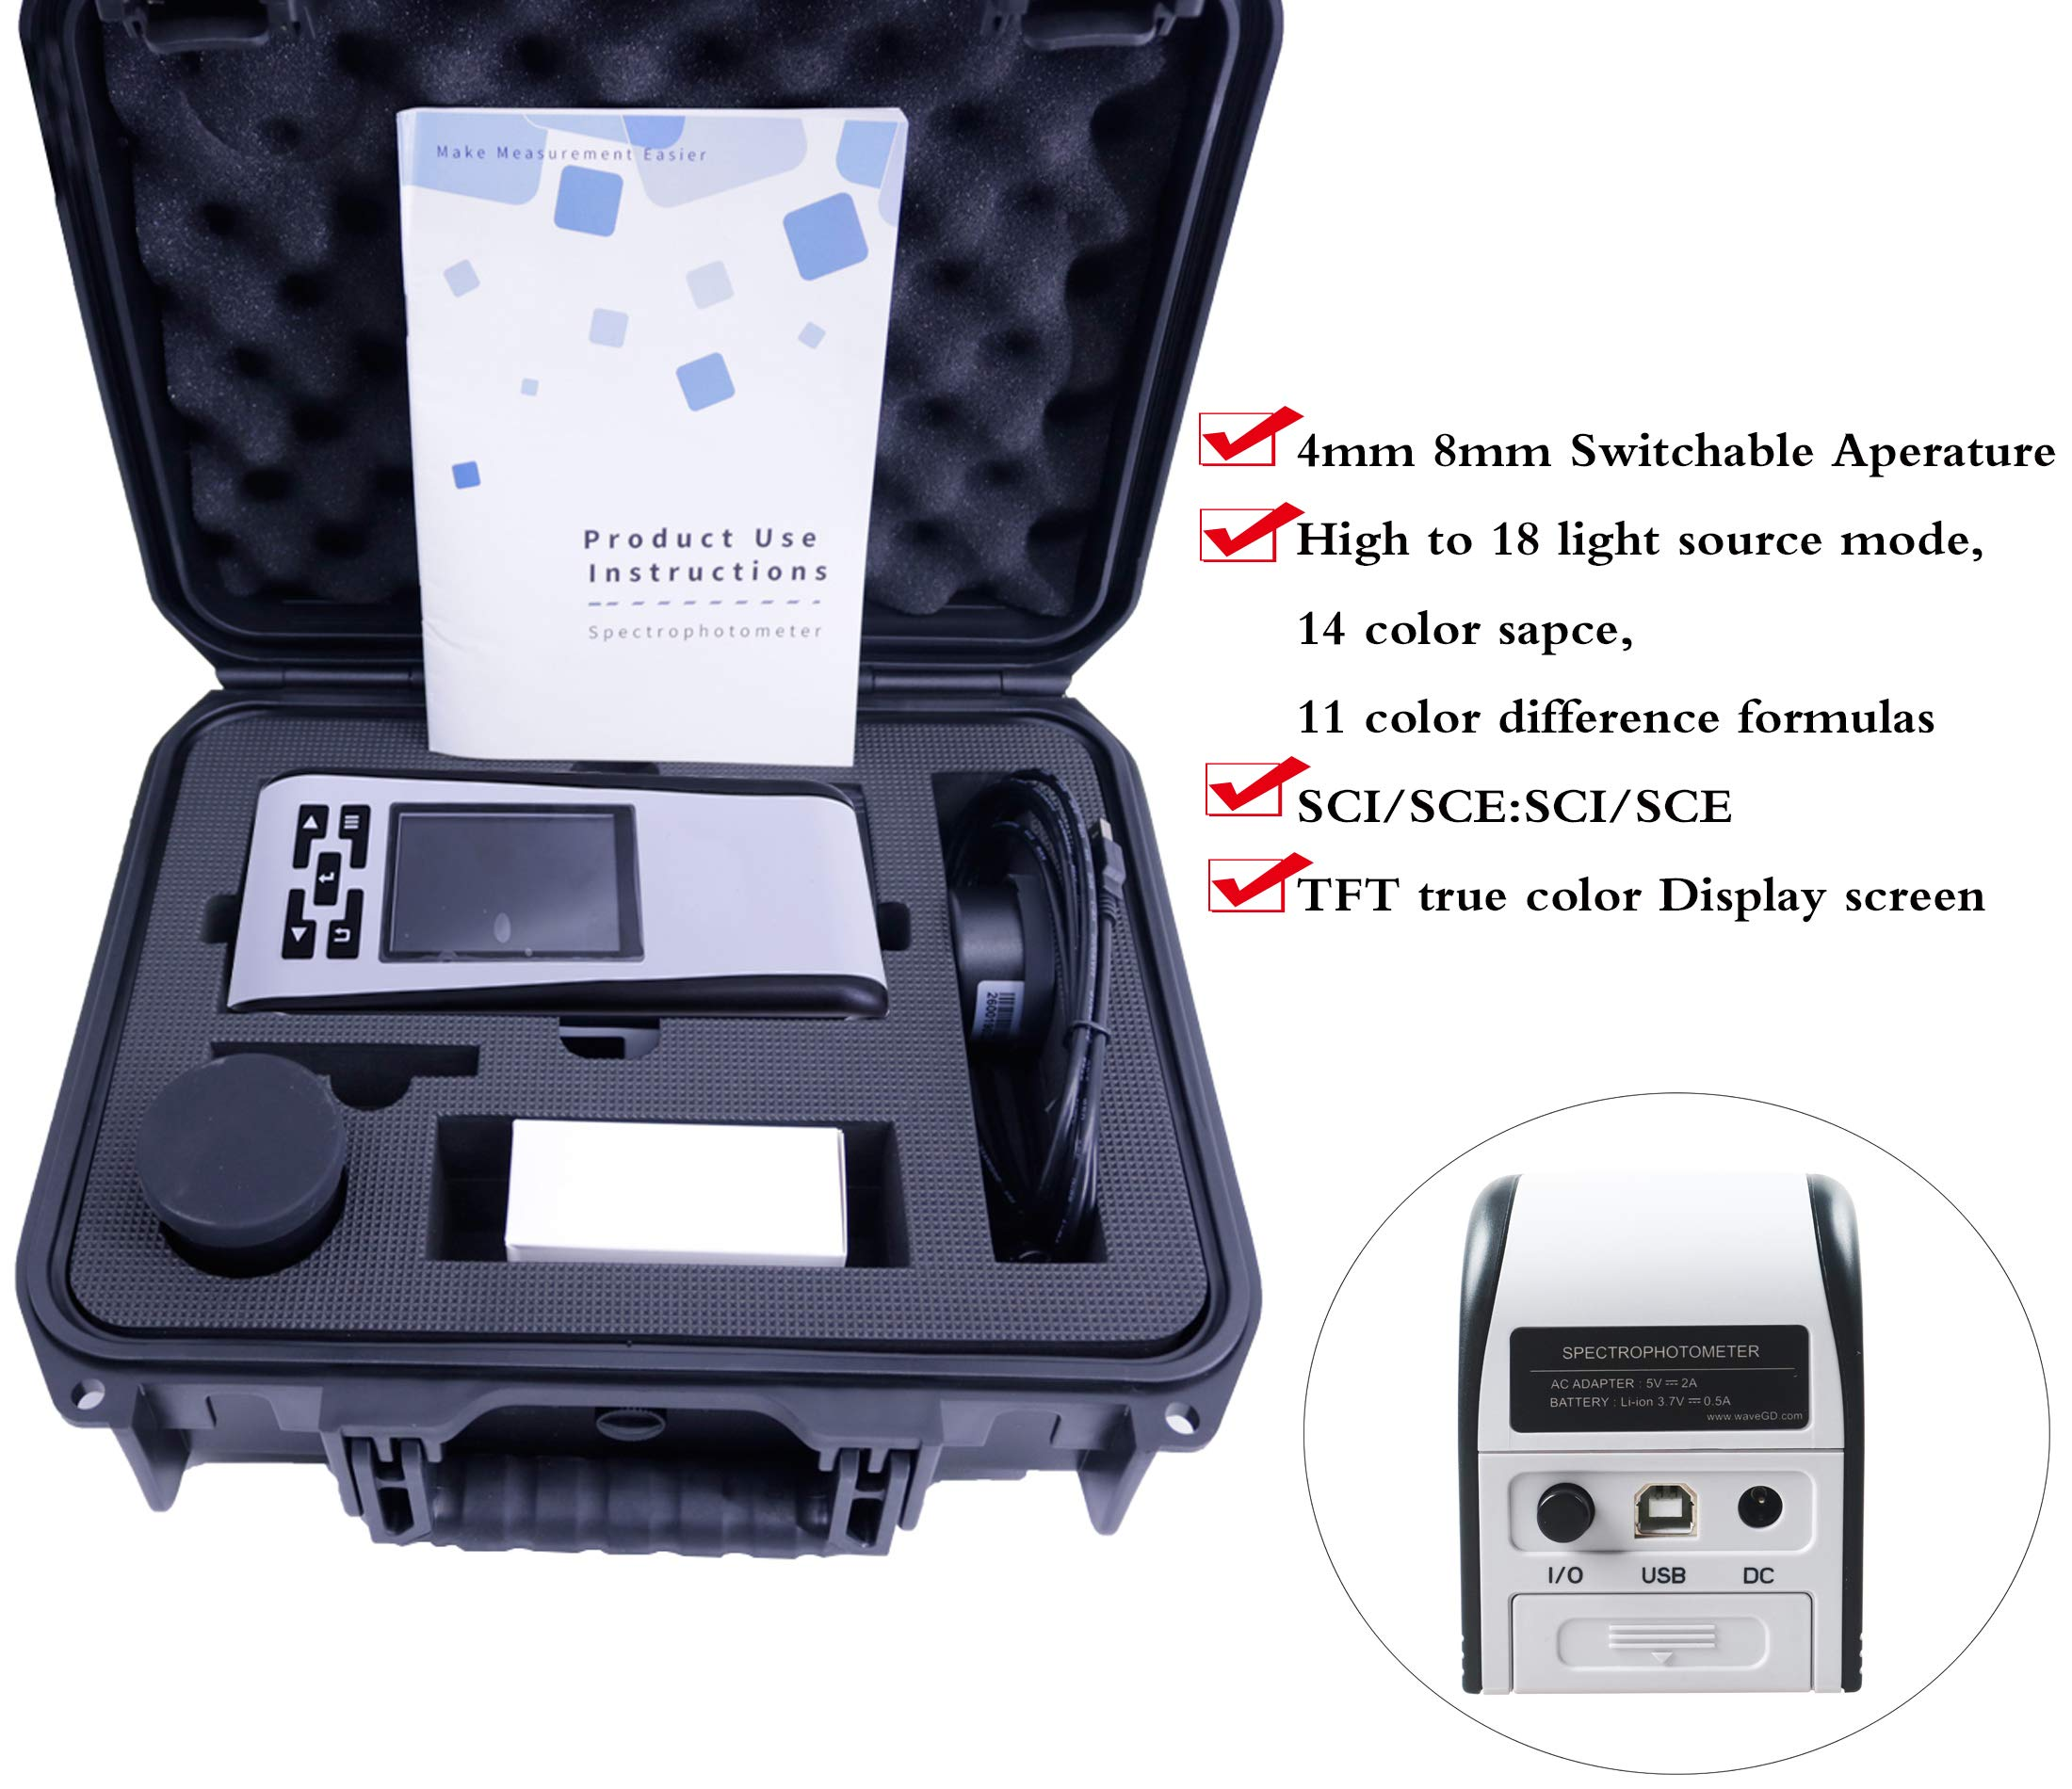 HFBTE 16mm Caliber Spectrophotometer Colorimeter Color Difference Meter Tester with A C D50 D65 F2 F12 Light Source Lab LCh and Yxy Three Color Rendering Parameters